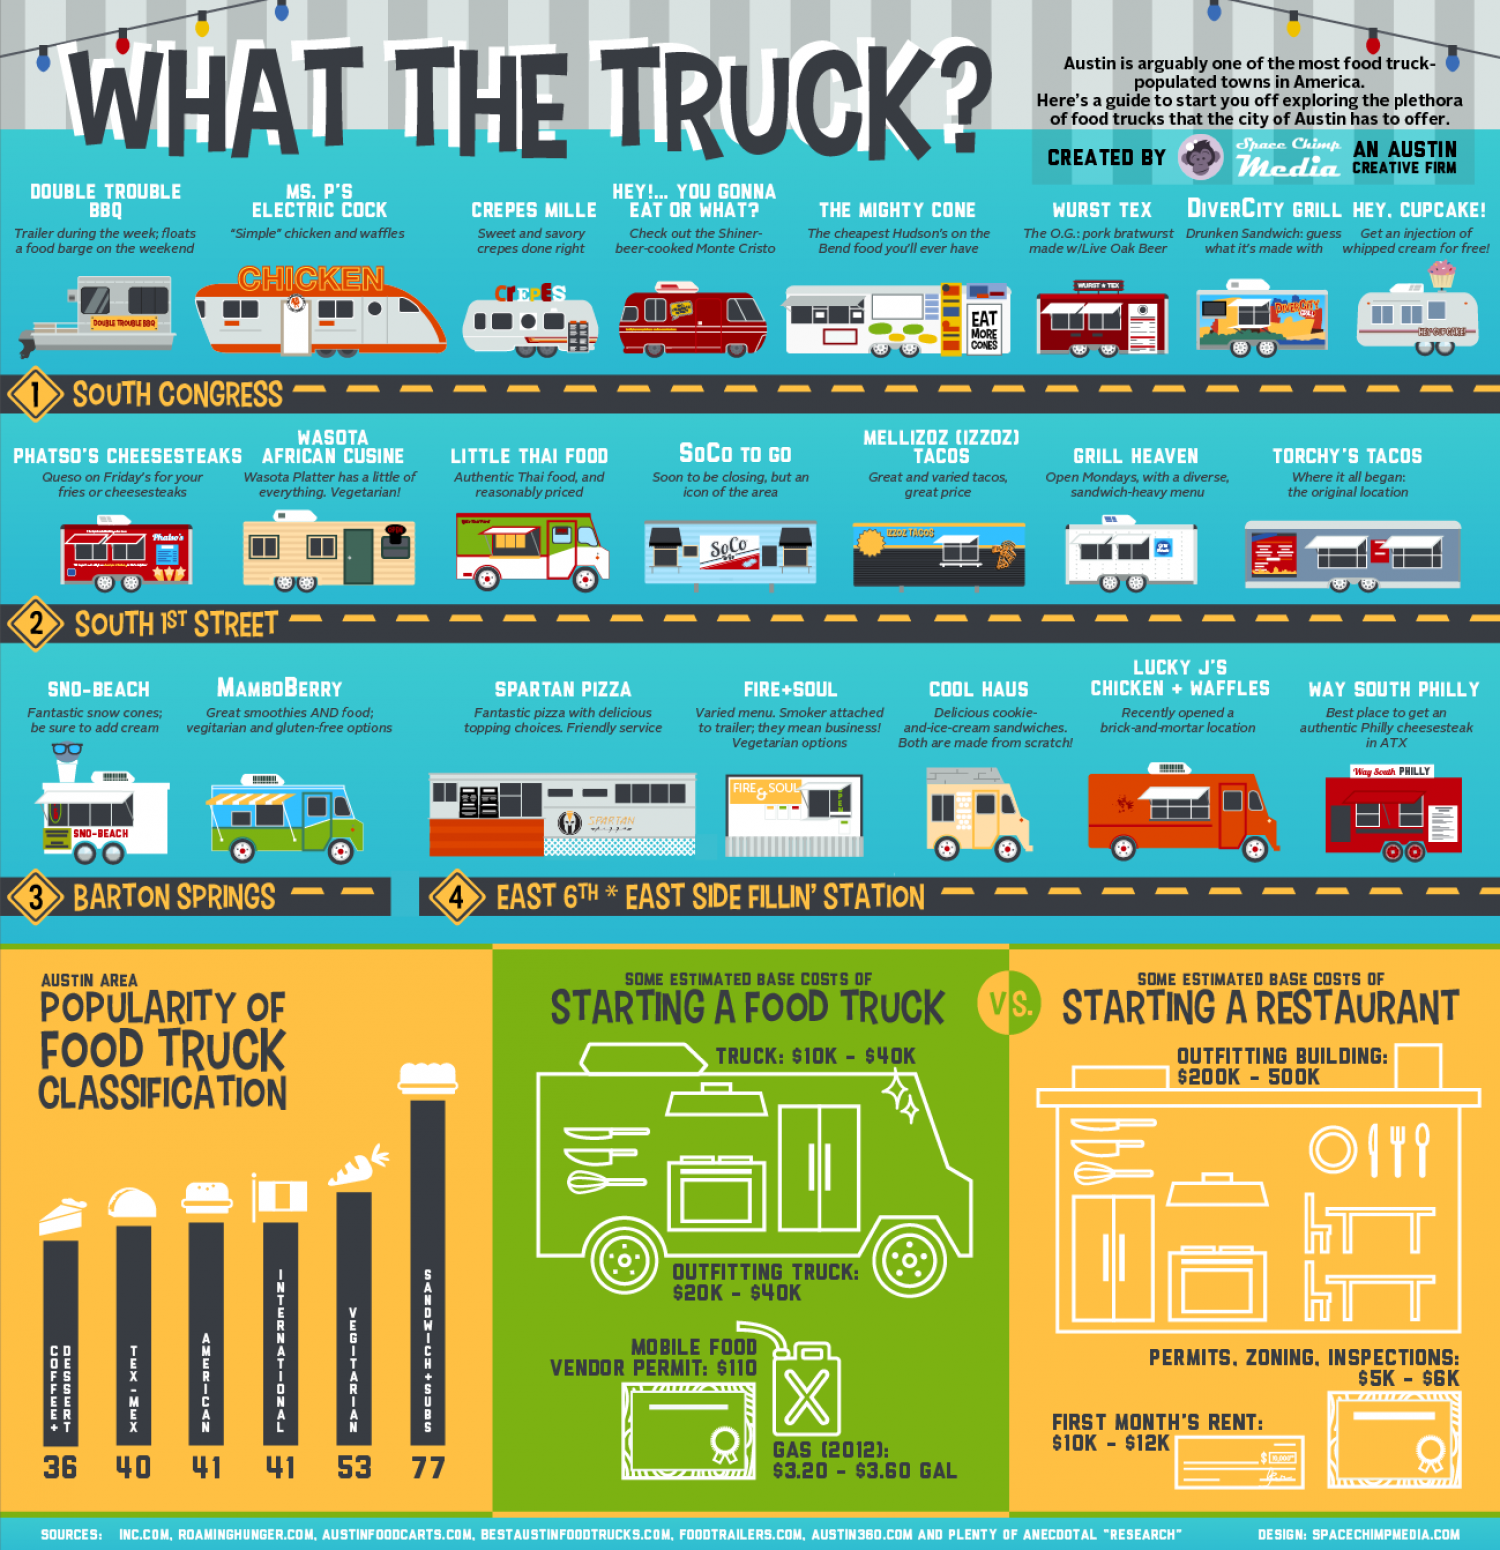 What The Truck? Infographic